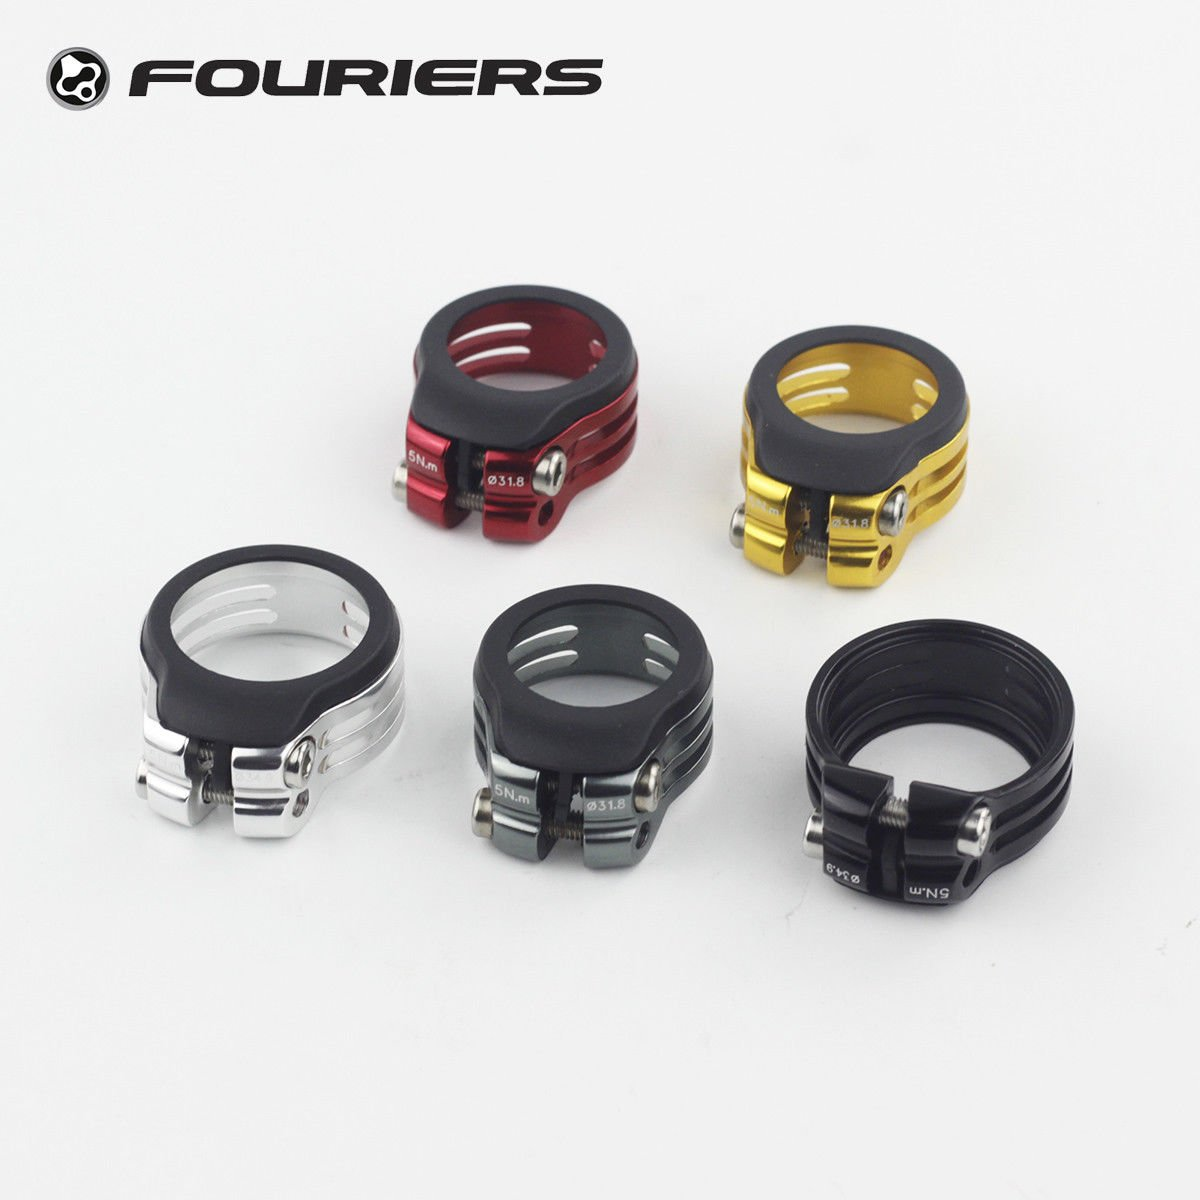 Fouriers CNC Alloy Seatpost Clamp Fixed 31.8mm/34.9mm Waterproof Superlight(31.8 red) by Fouriers